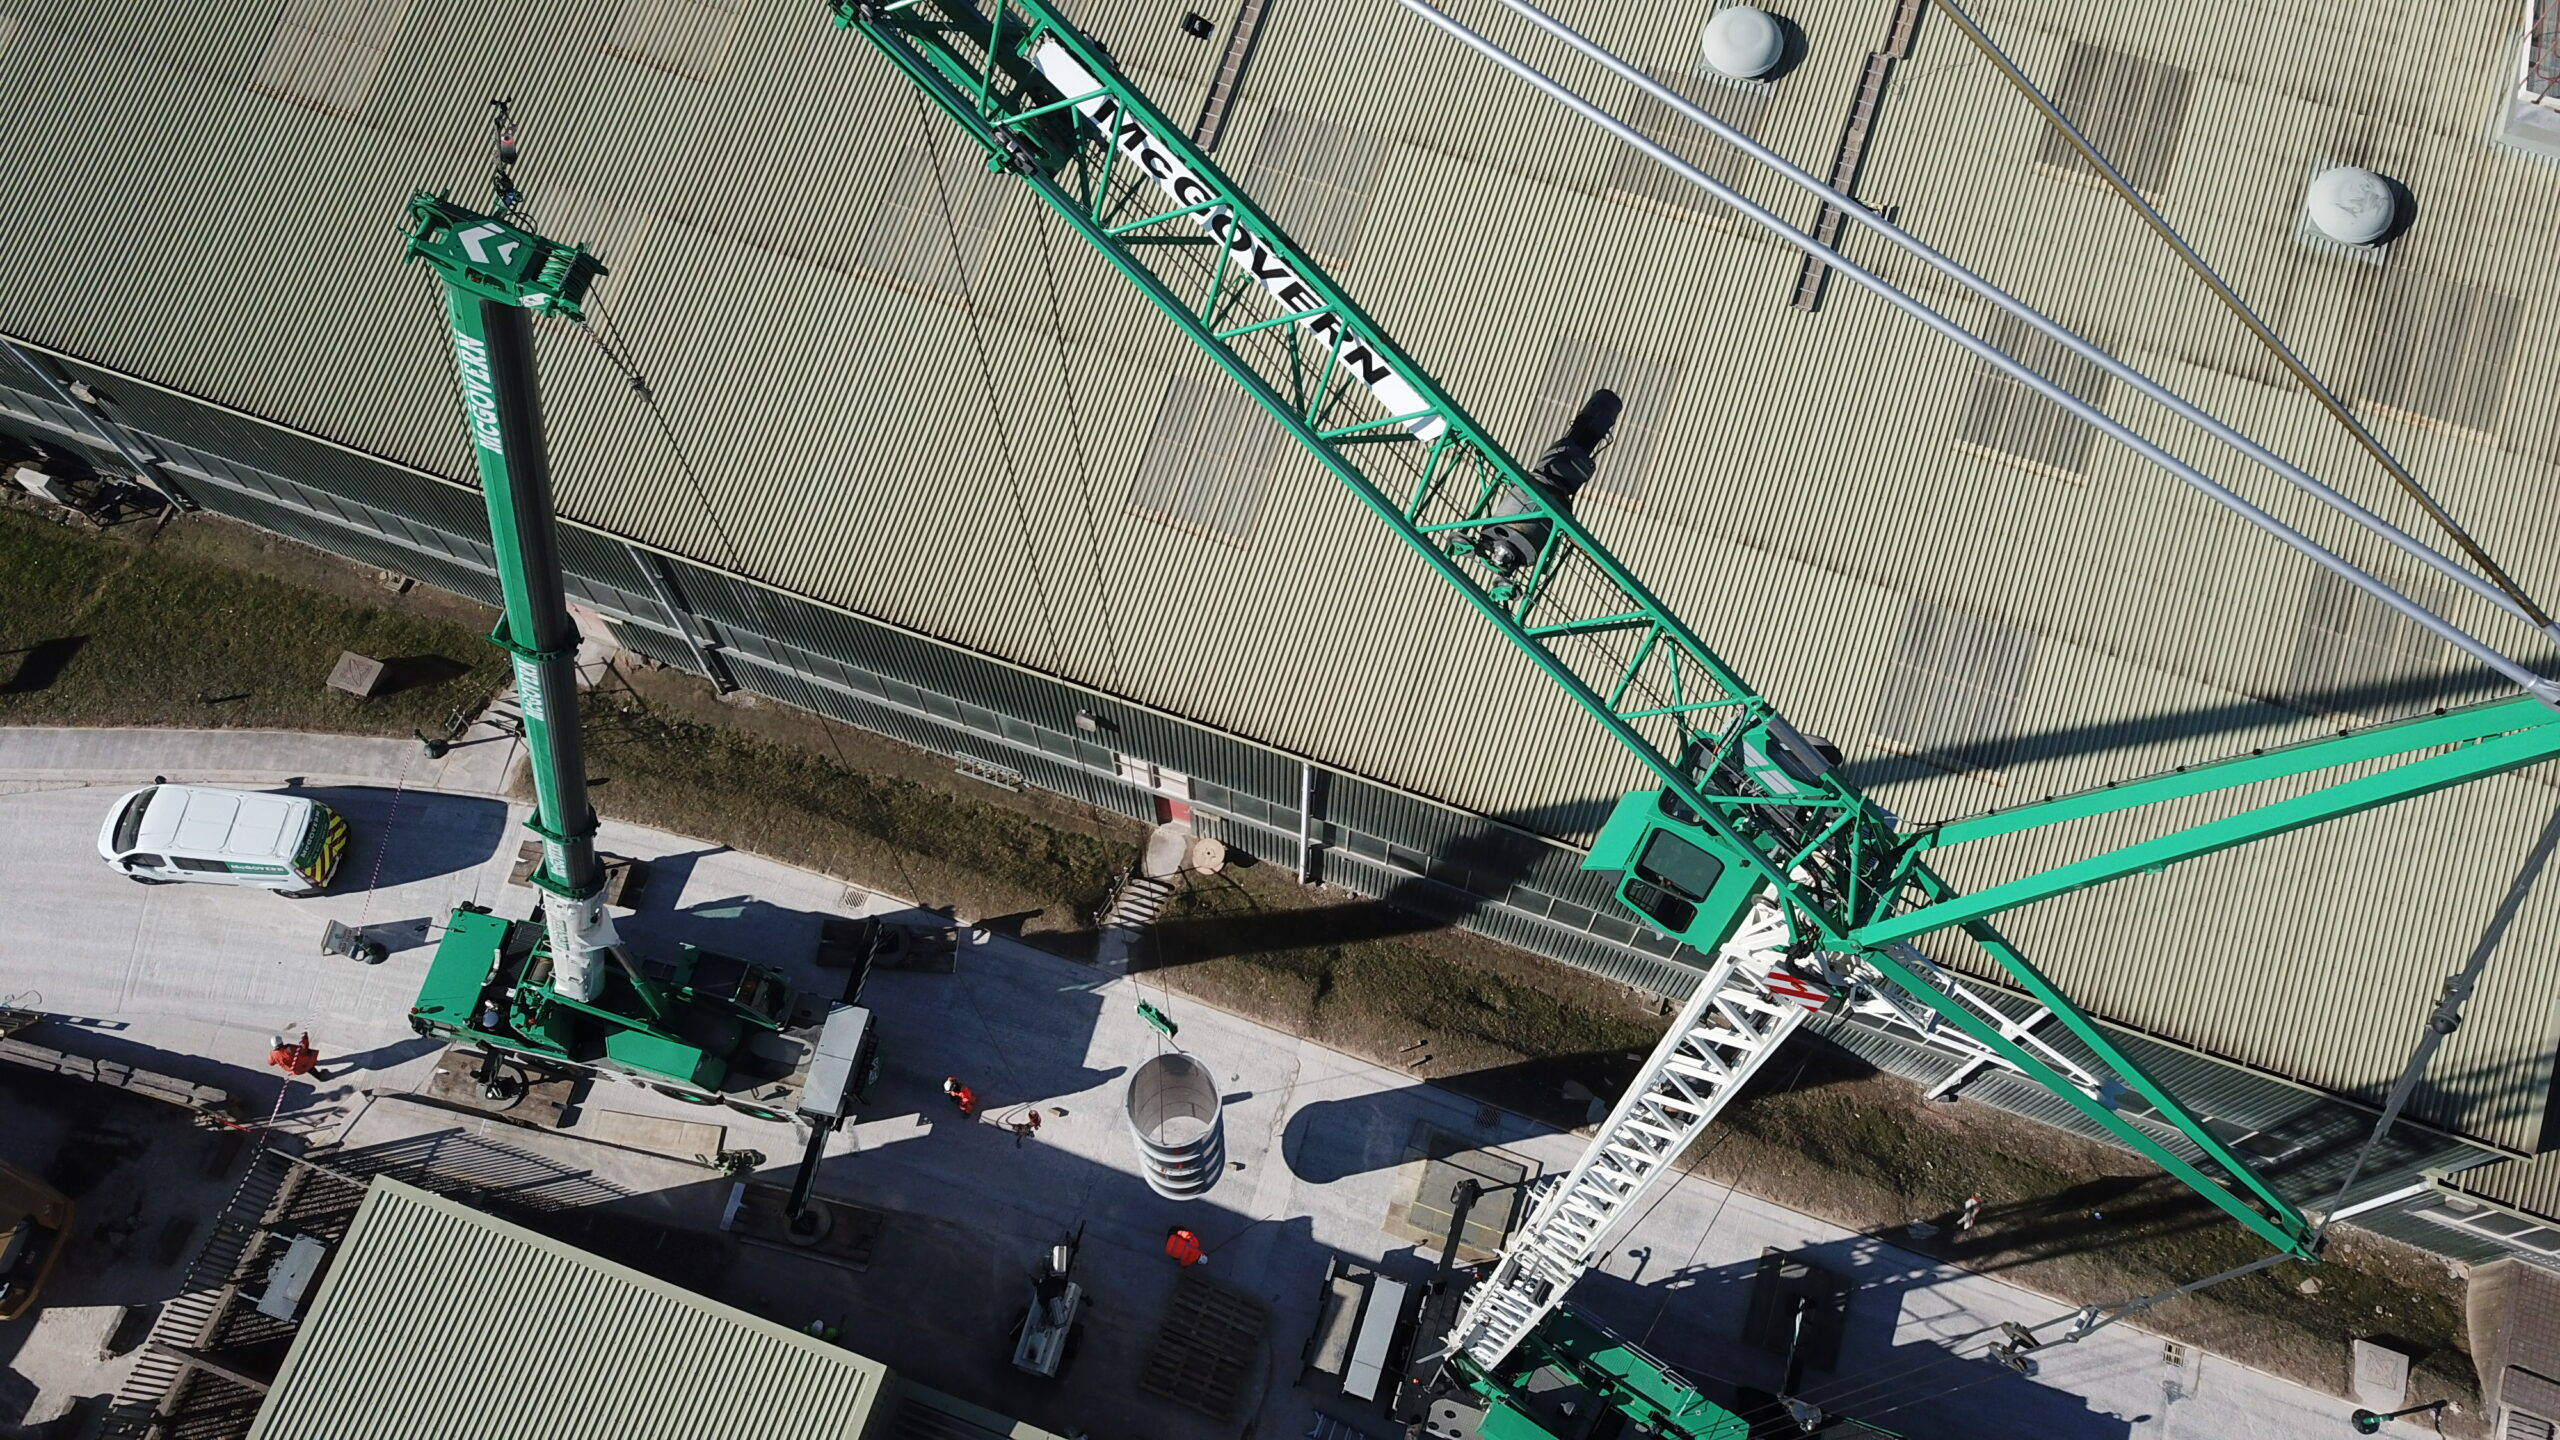 Crane from above